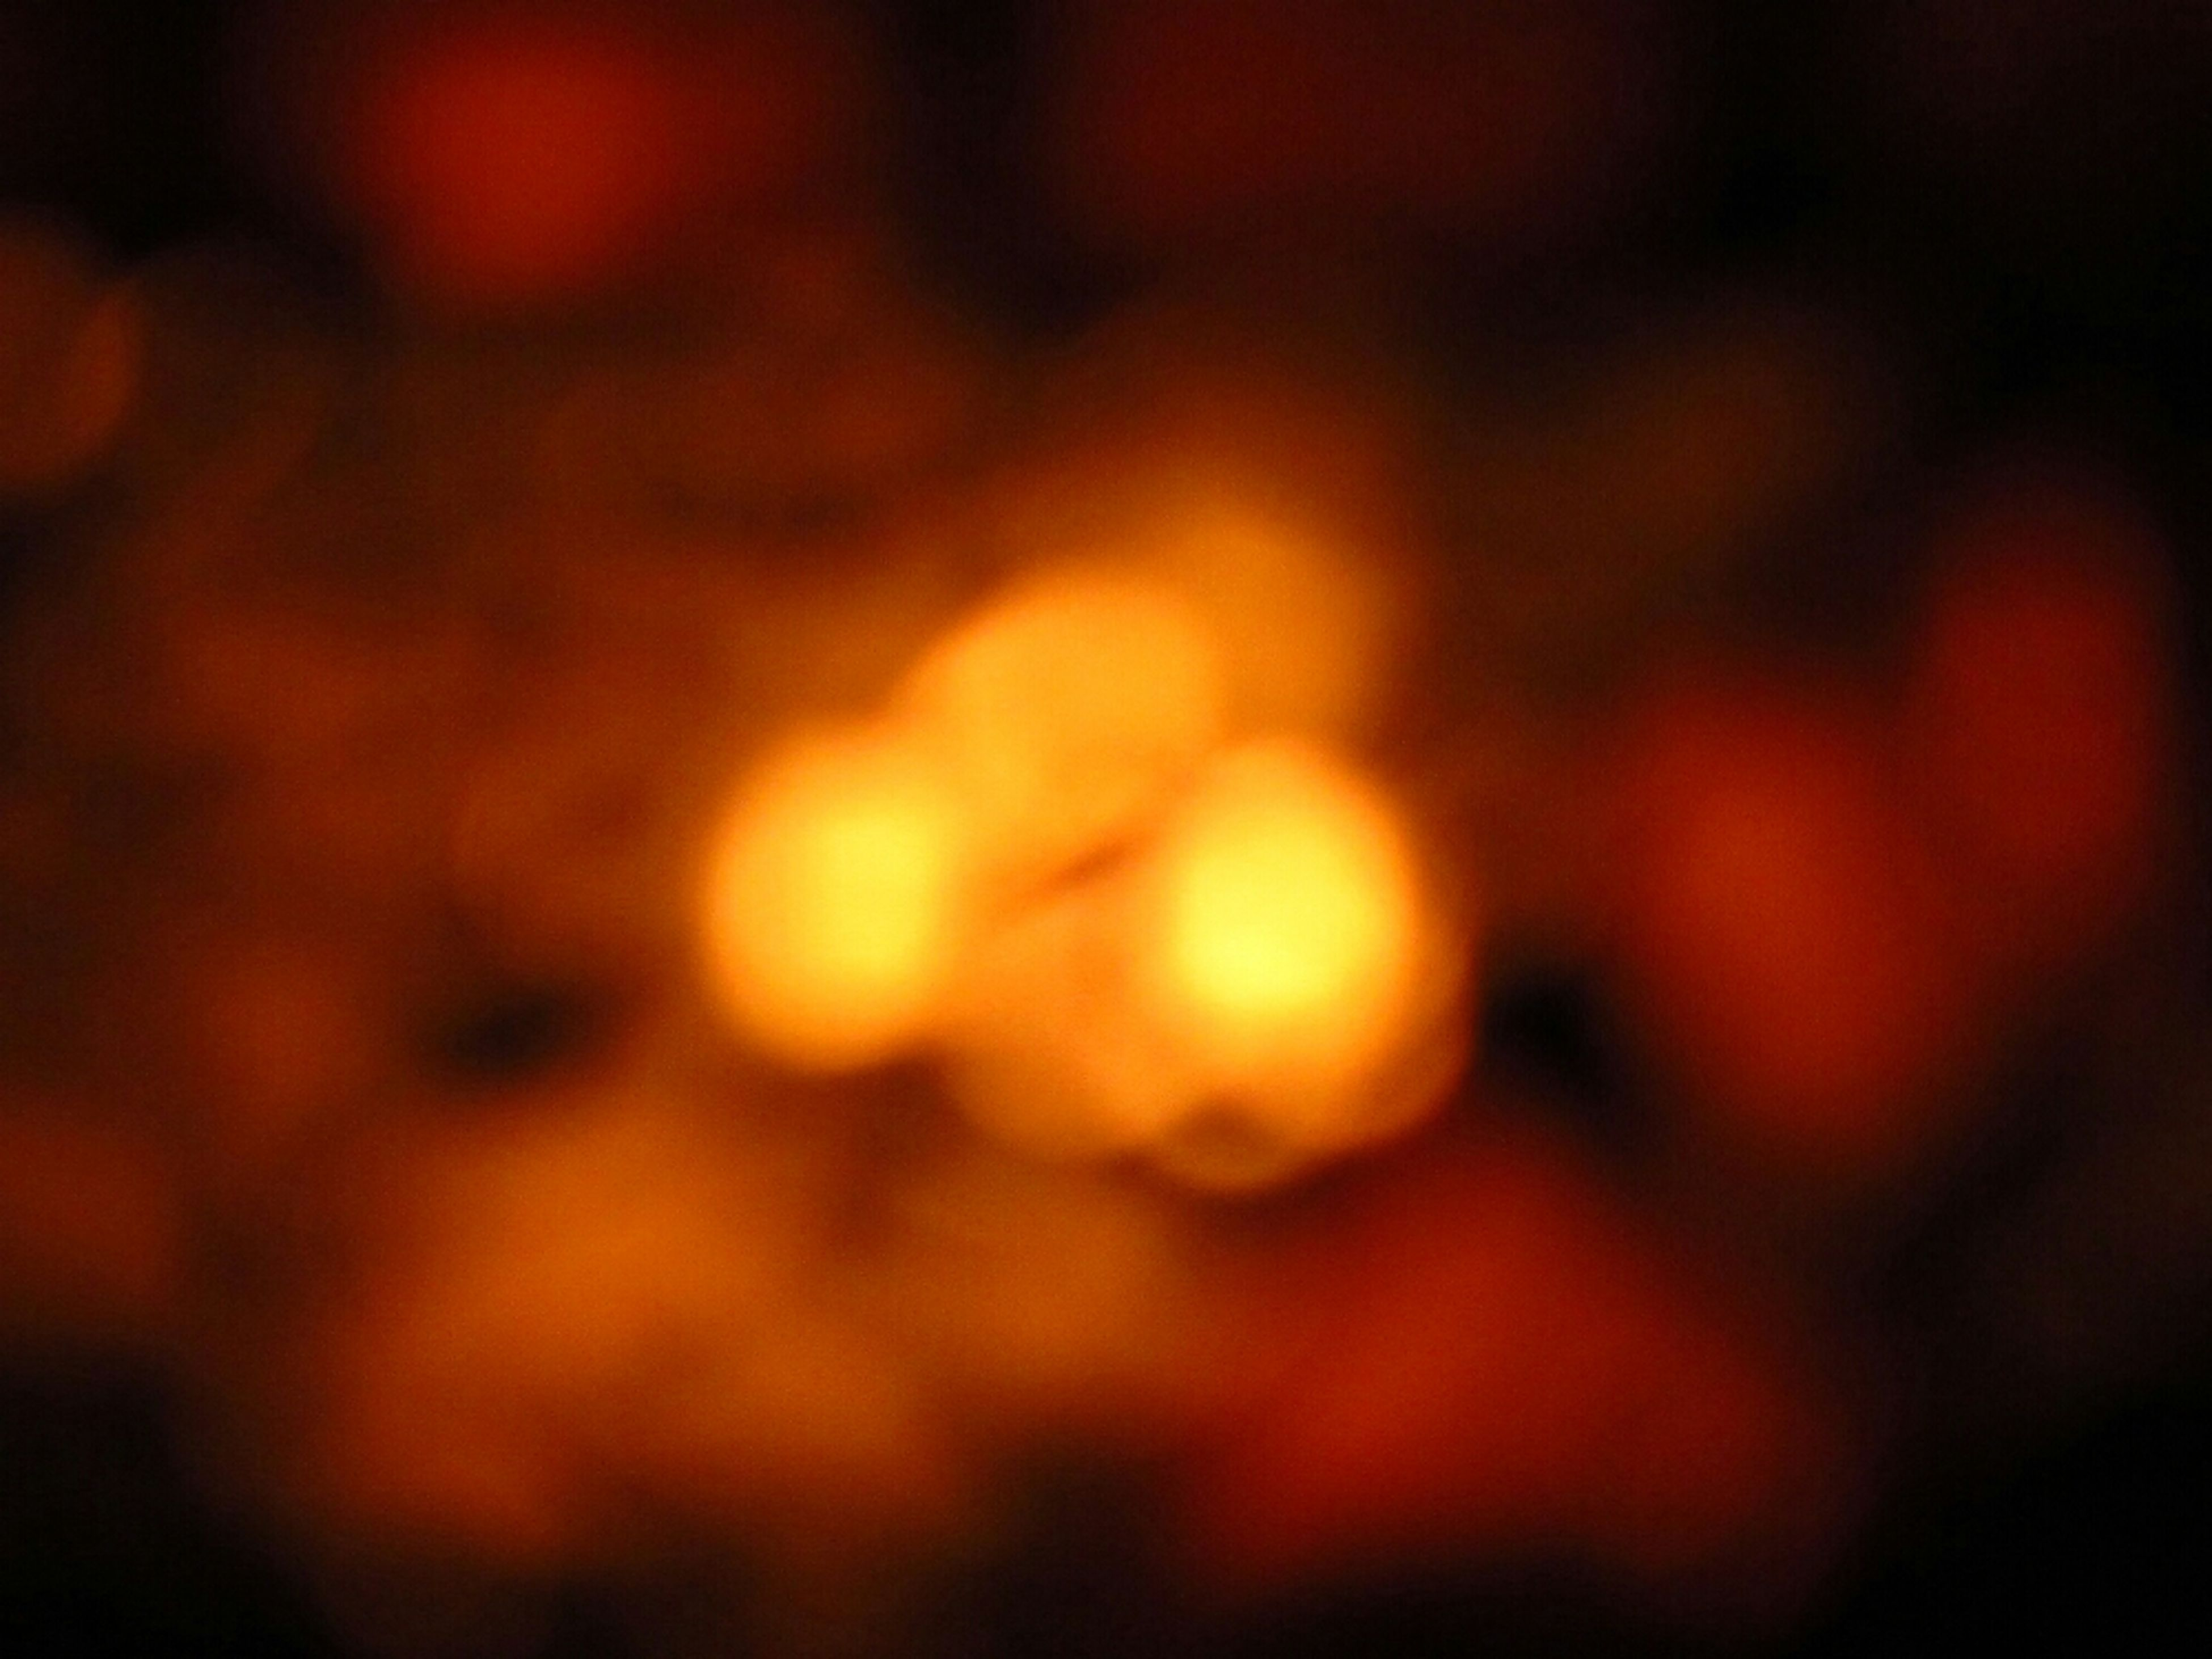 night, illuminated, defocused, glowing, selective focus, close-up, dark, light - natural phenomenon, focus on foreground, orange color, no people, backgrounds, outdoors, nature, lighting equipment, full frame, beauty in nature, light, abstract, tranquility